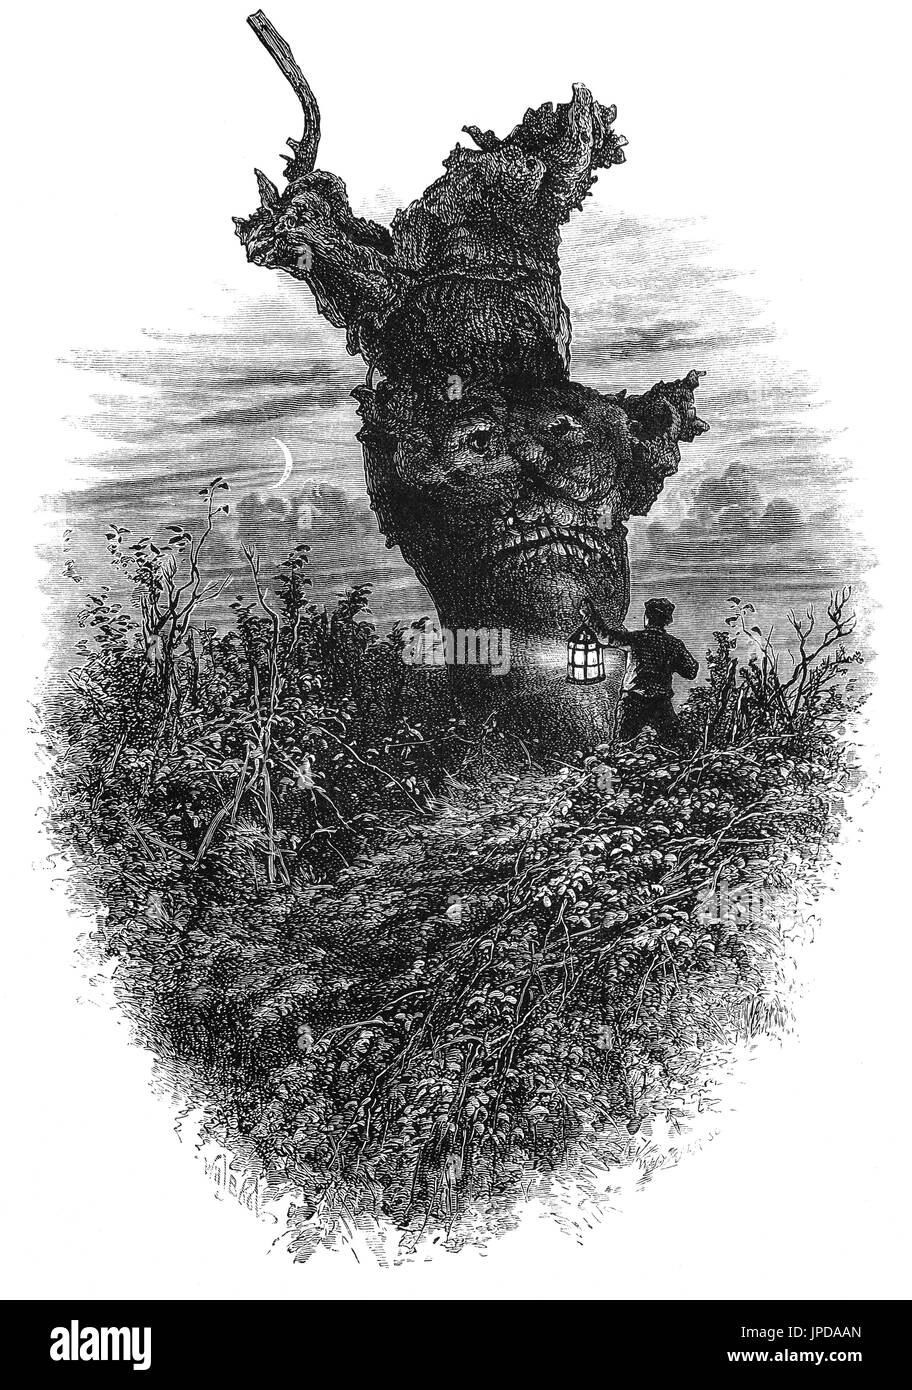 1870: A night visit to the Monkey Tree in  in Burnham Beeches, to the west of Farnham Common in Burnham, Buckinghamshire, England. Open to the public it is now  a Site of Special Scientific Interest, a National Nature Reserve and a Special Area of Conservation. - Stock Image